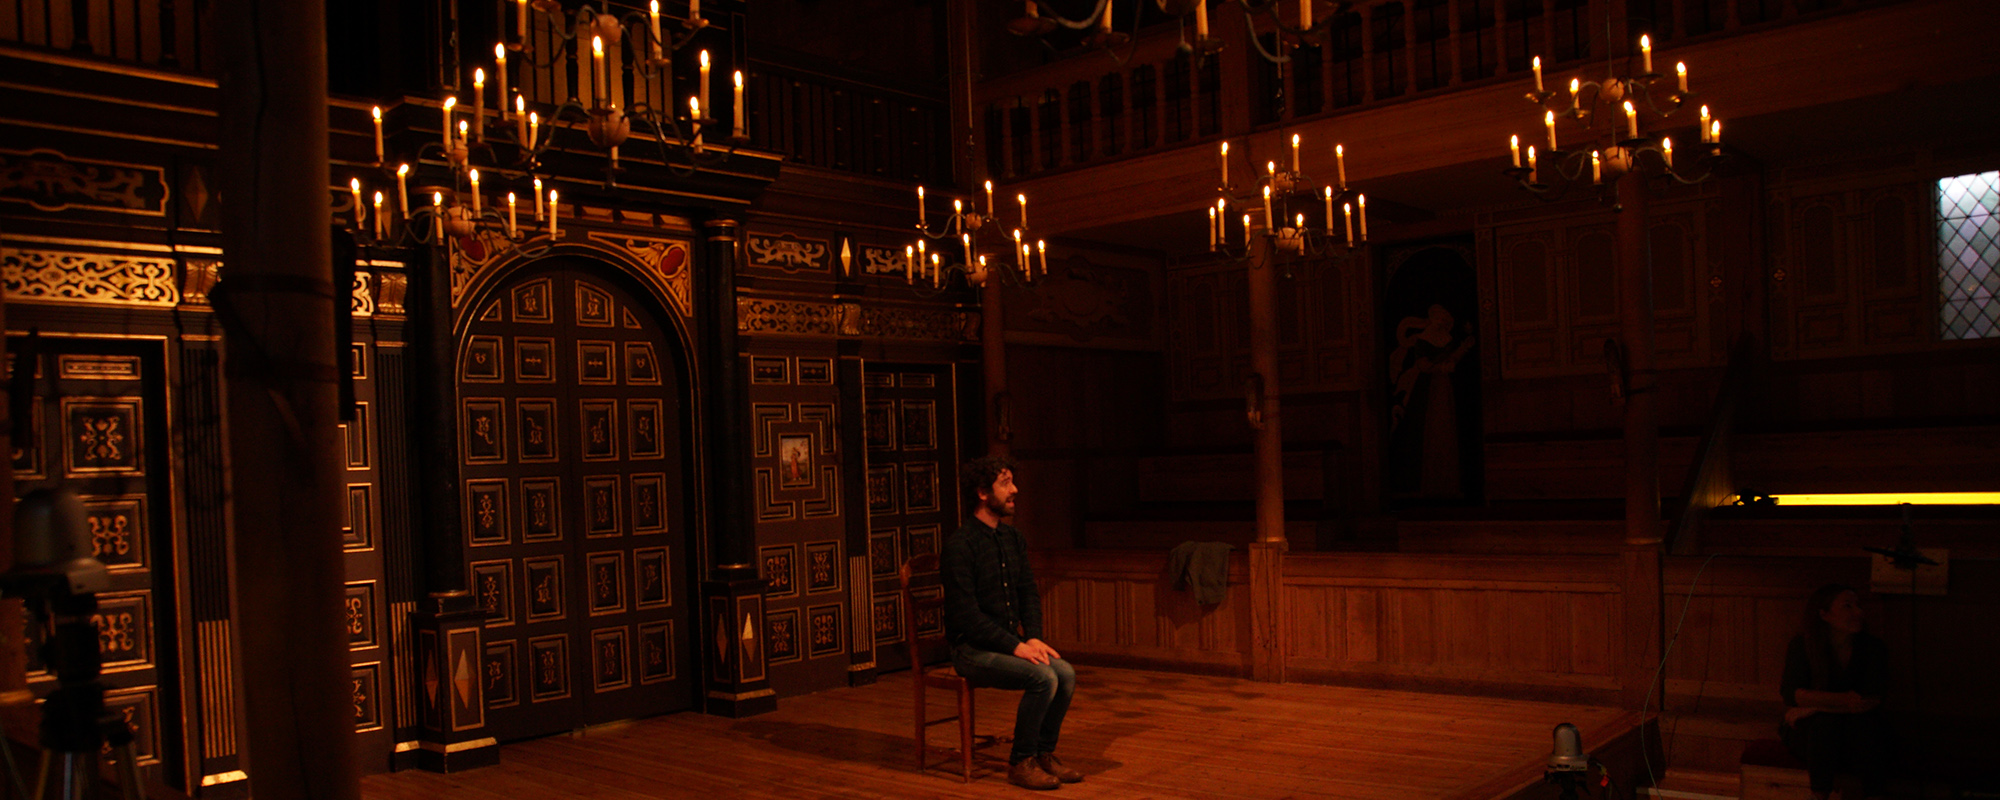 An actor sits on the stage surrounded by the candlelight of the indoor playhouse